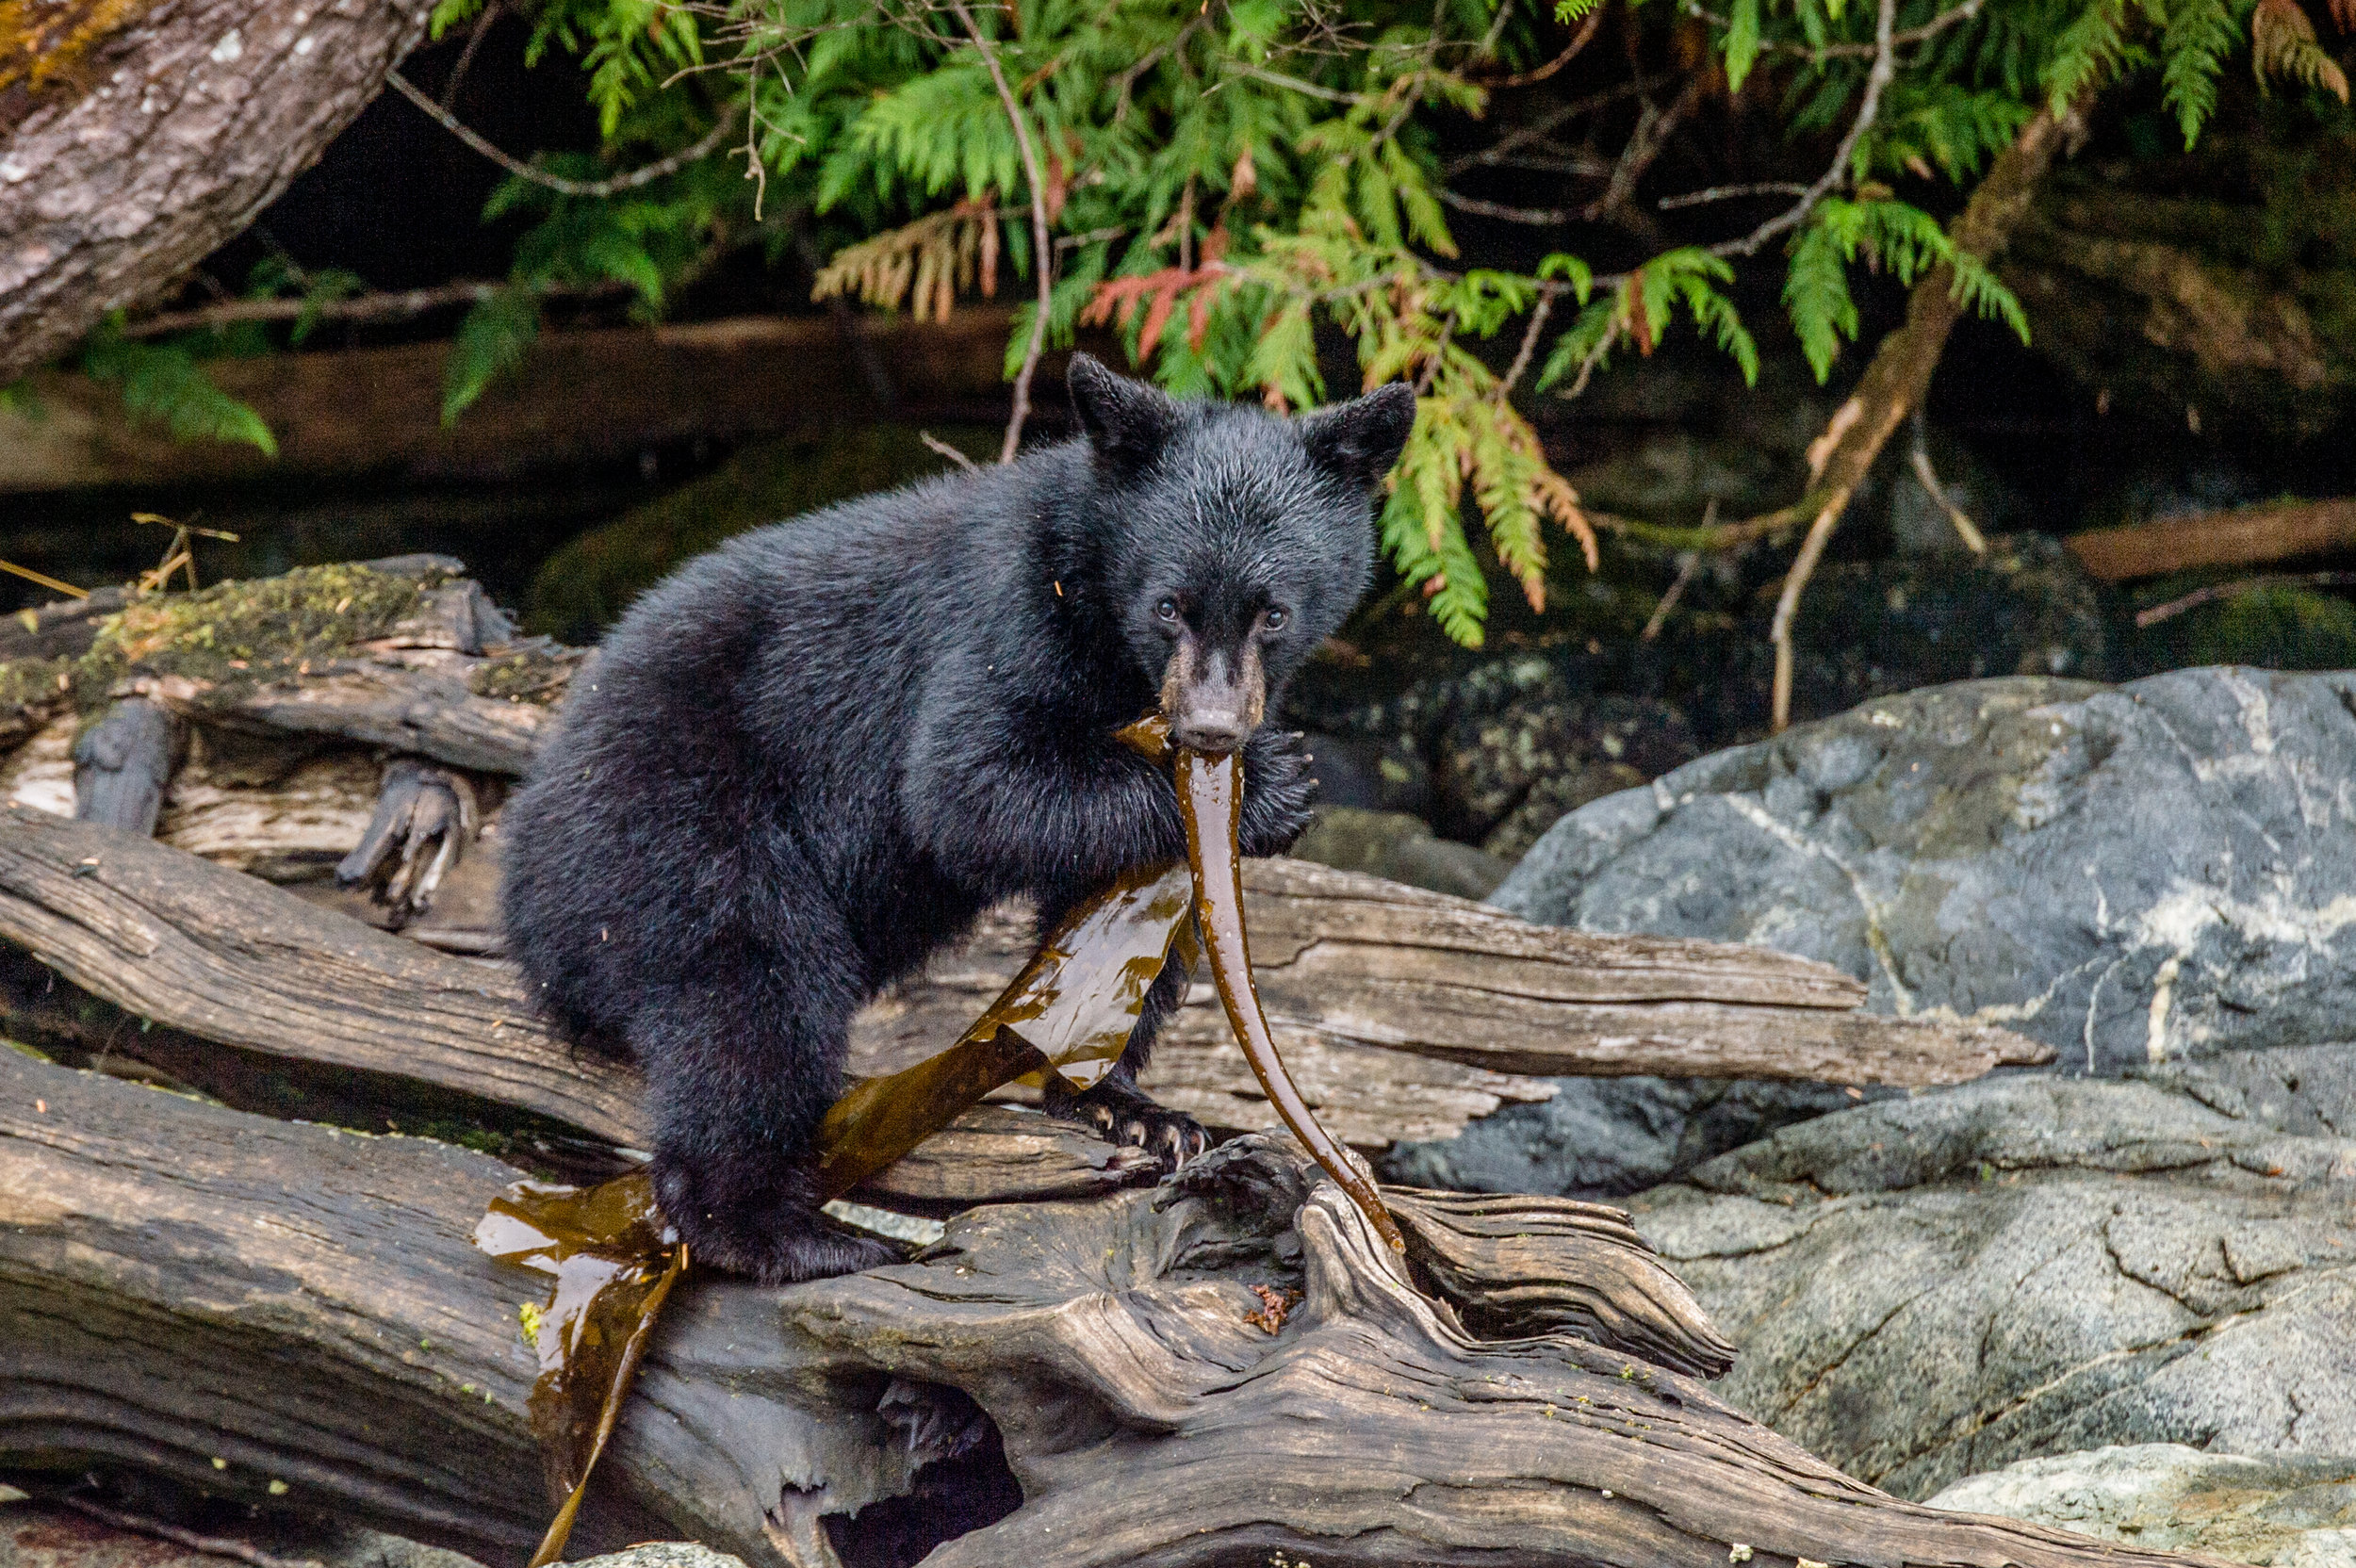 BEAR WATCHING TOUR - Available: April - OctoberDeparting: Daily on the low tide